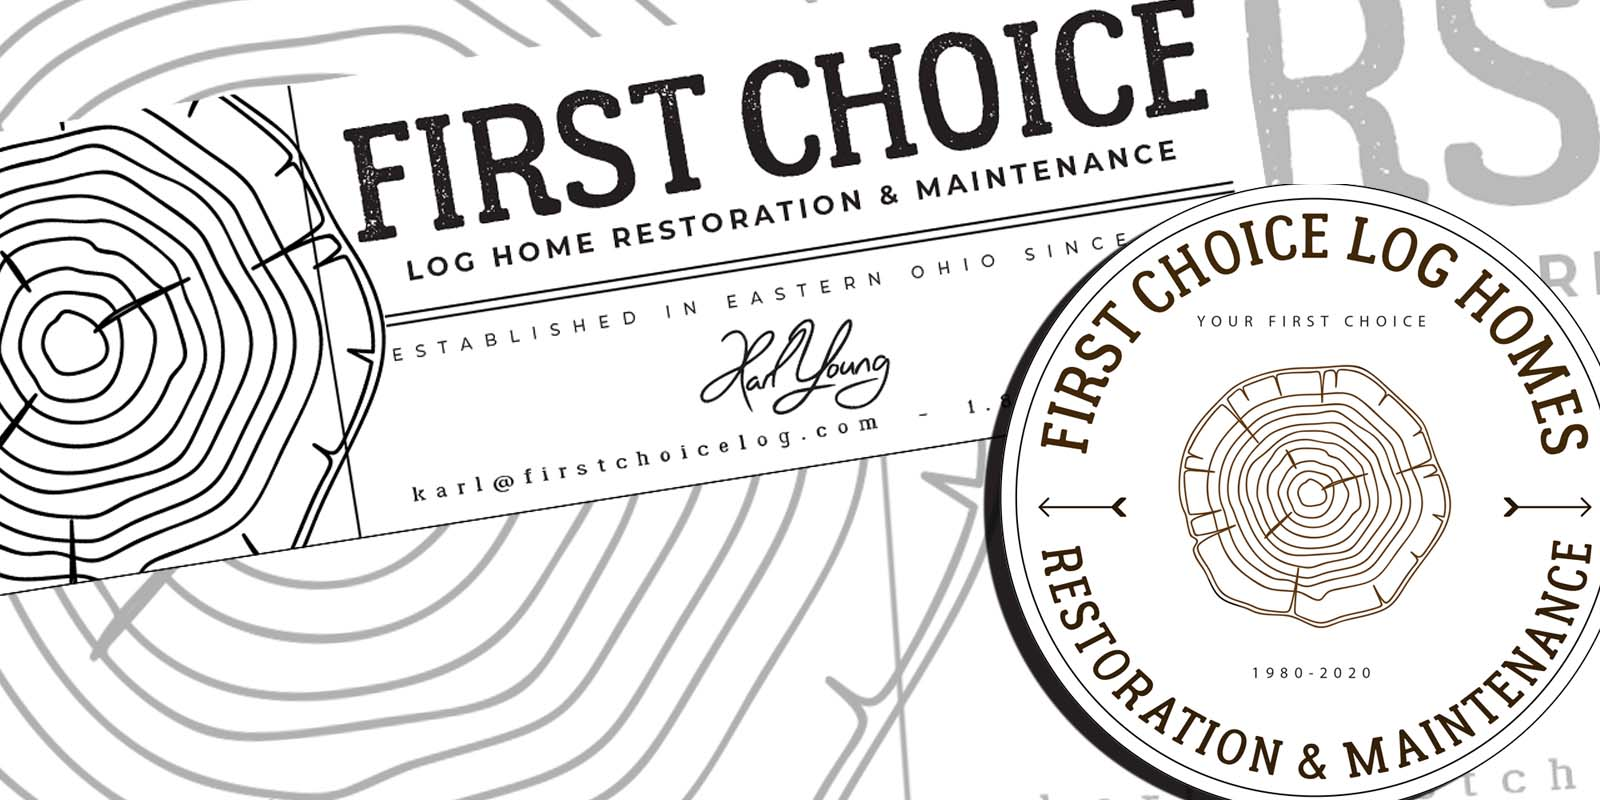 New Branding Logos and Marketing Assets for log home restoration company